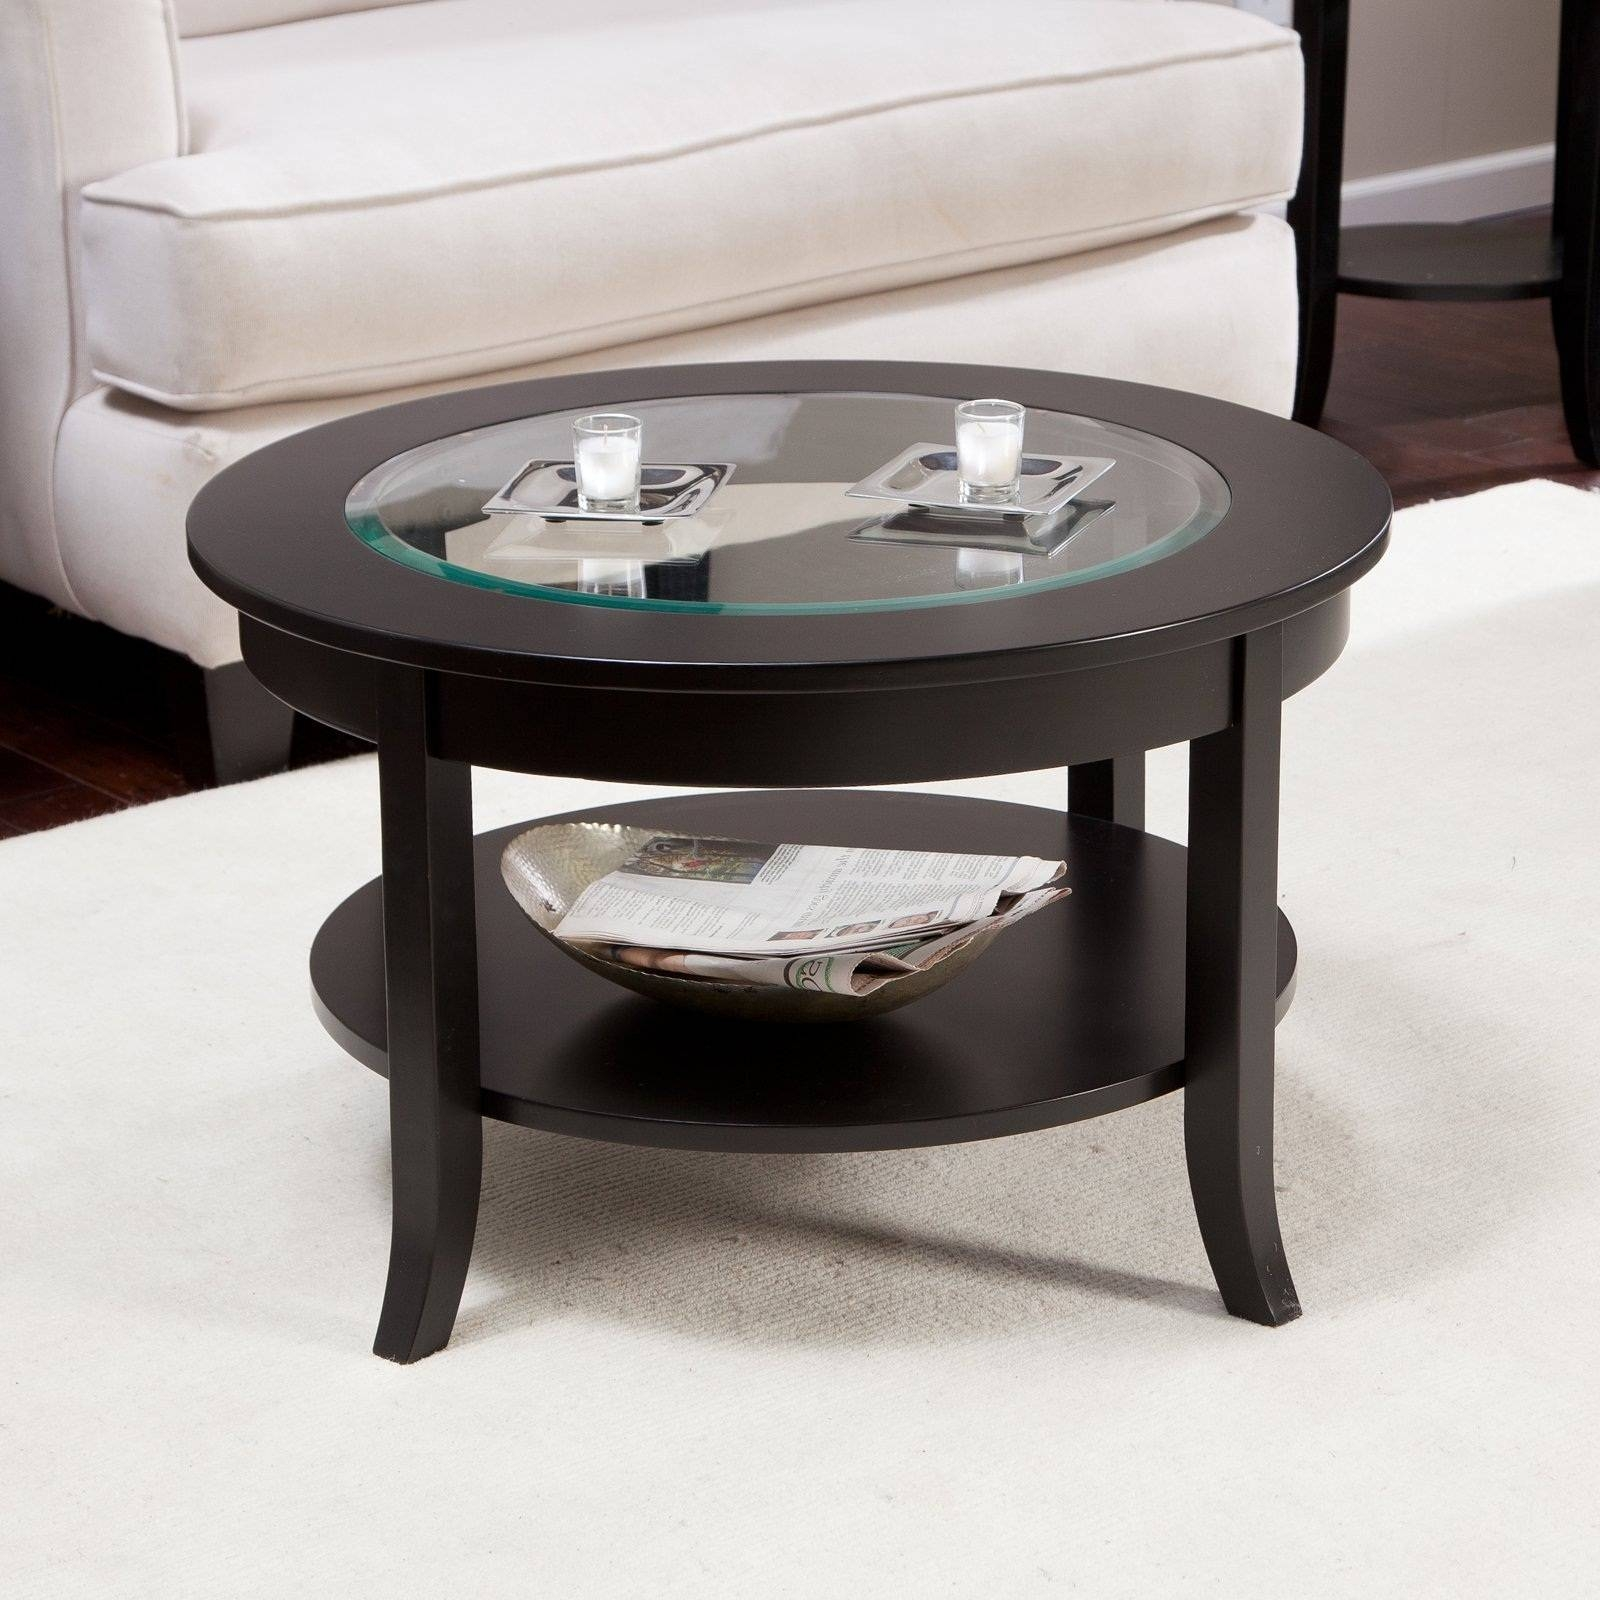 Table : Round Glass Coffee Table With Wood Base Foyer Basement With Rounded  Corner Coffee Tables